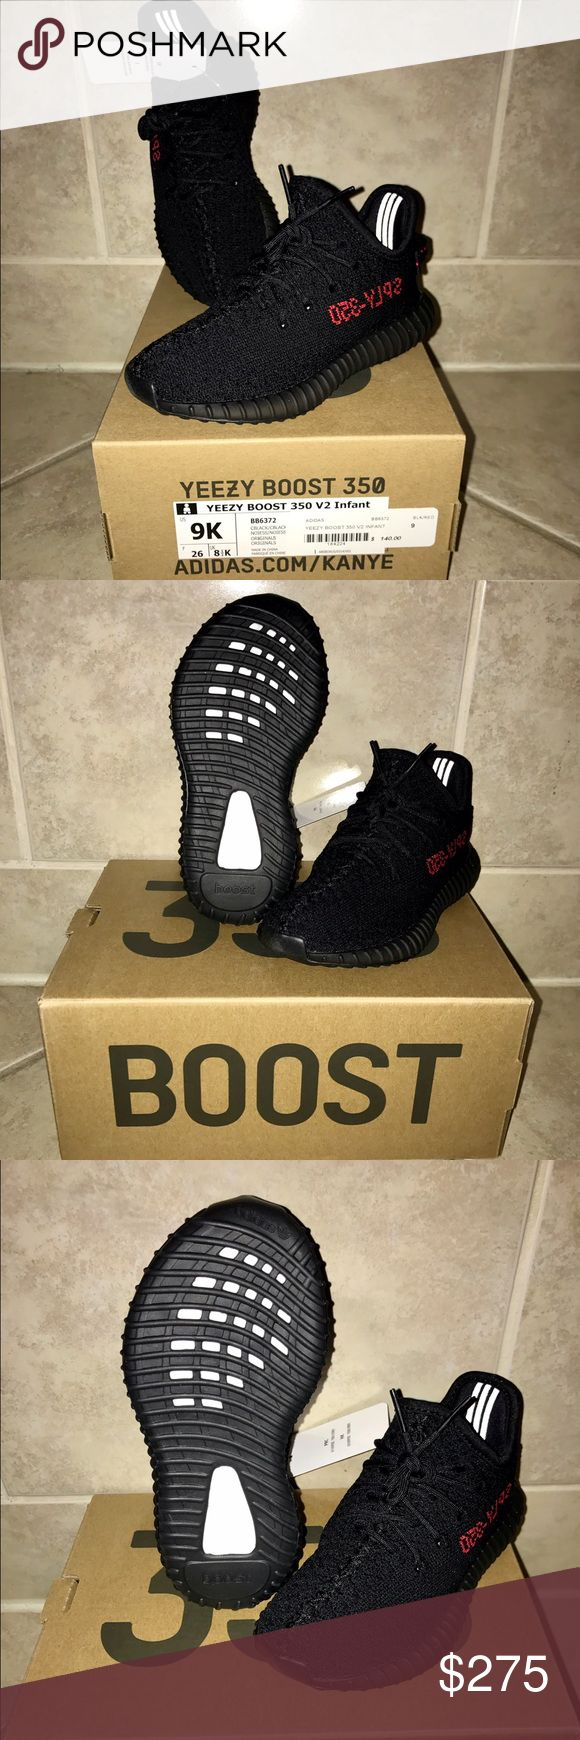 dbf2e6dc6 YEEZY BOOST 350 V 2 INFANT BB 6372 Walmart